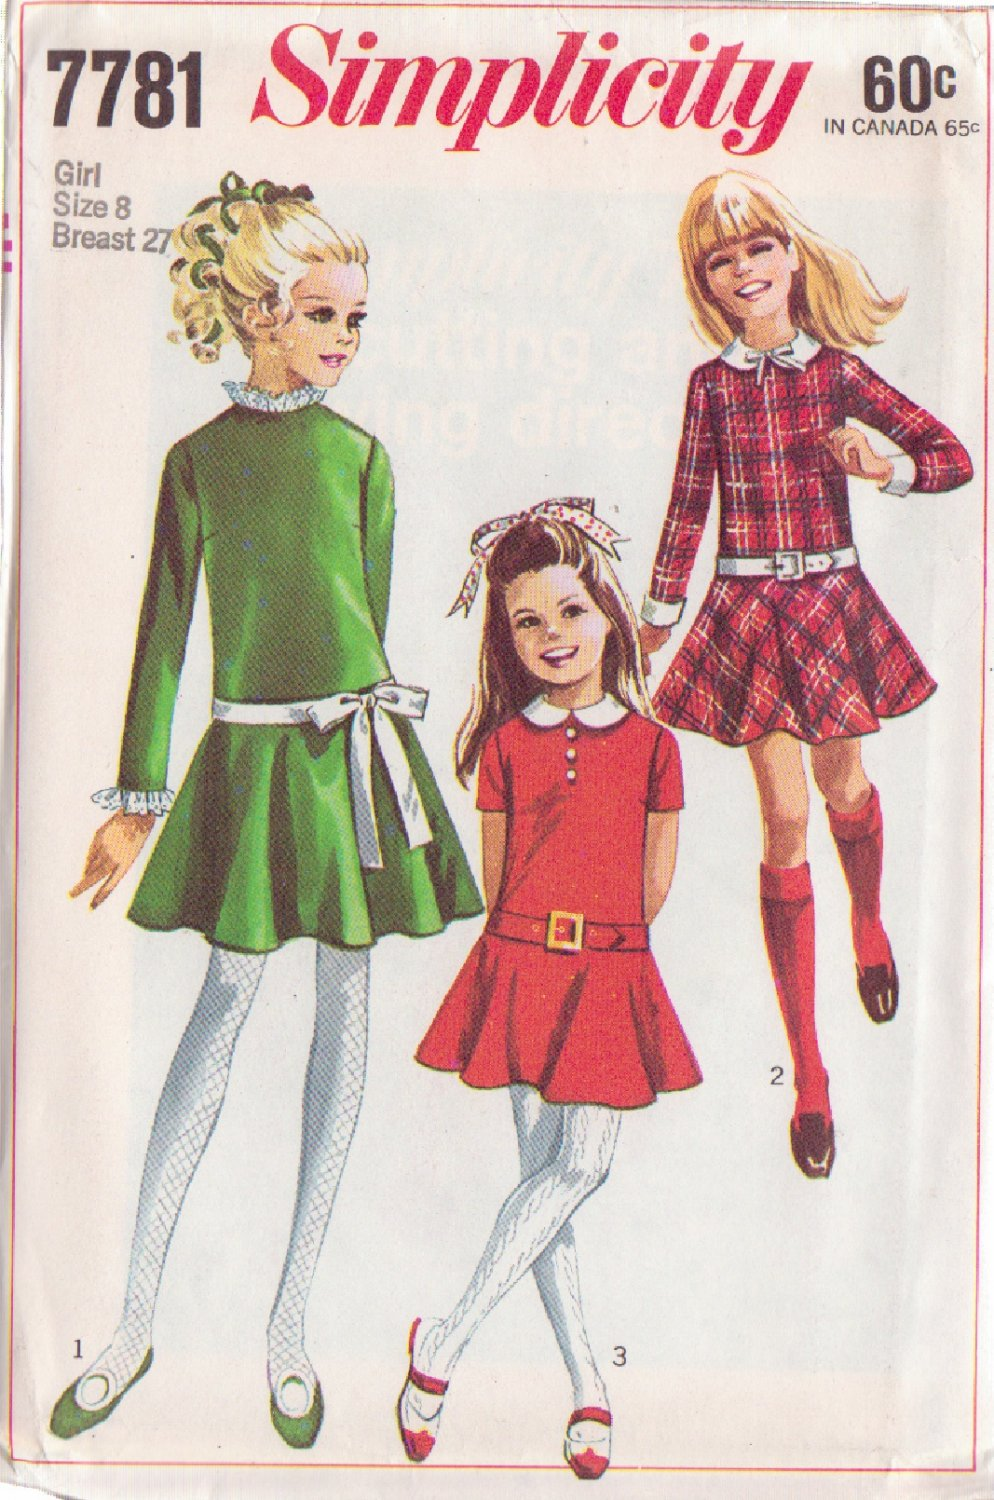 SIMPLICITY PATTERN 7781 GIRLS' DRESS WITH DETACHABLE COLLAR, CUFFS SIZE 8